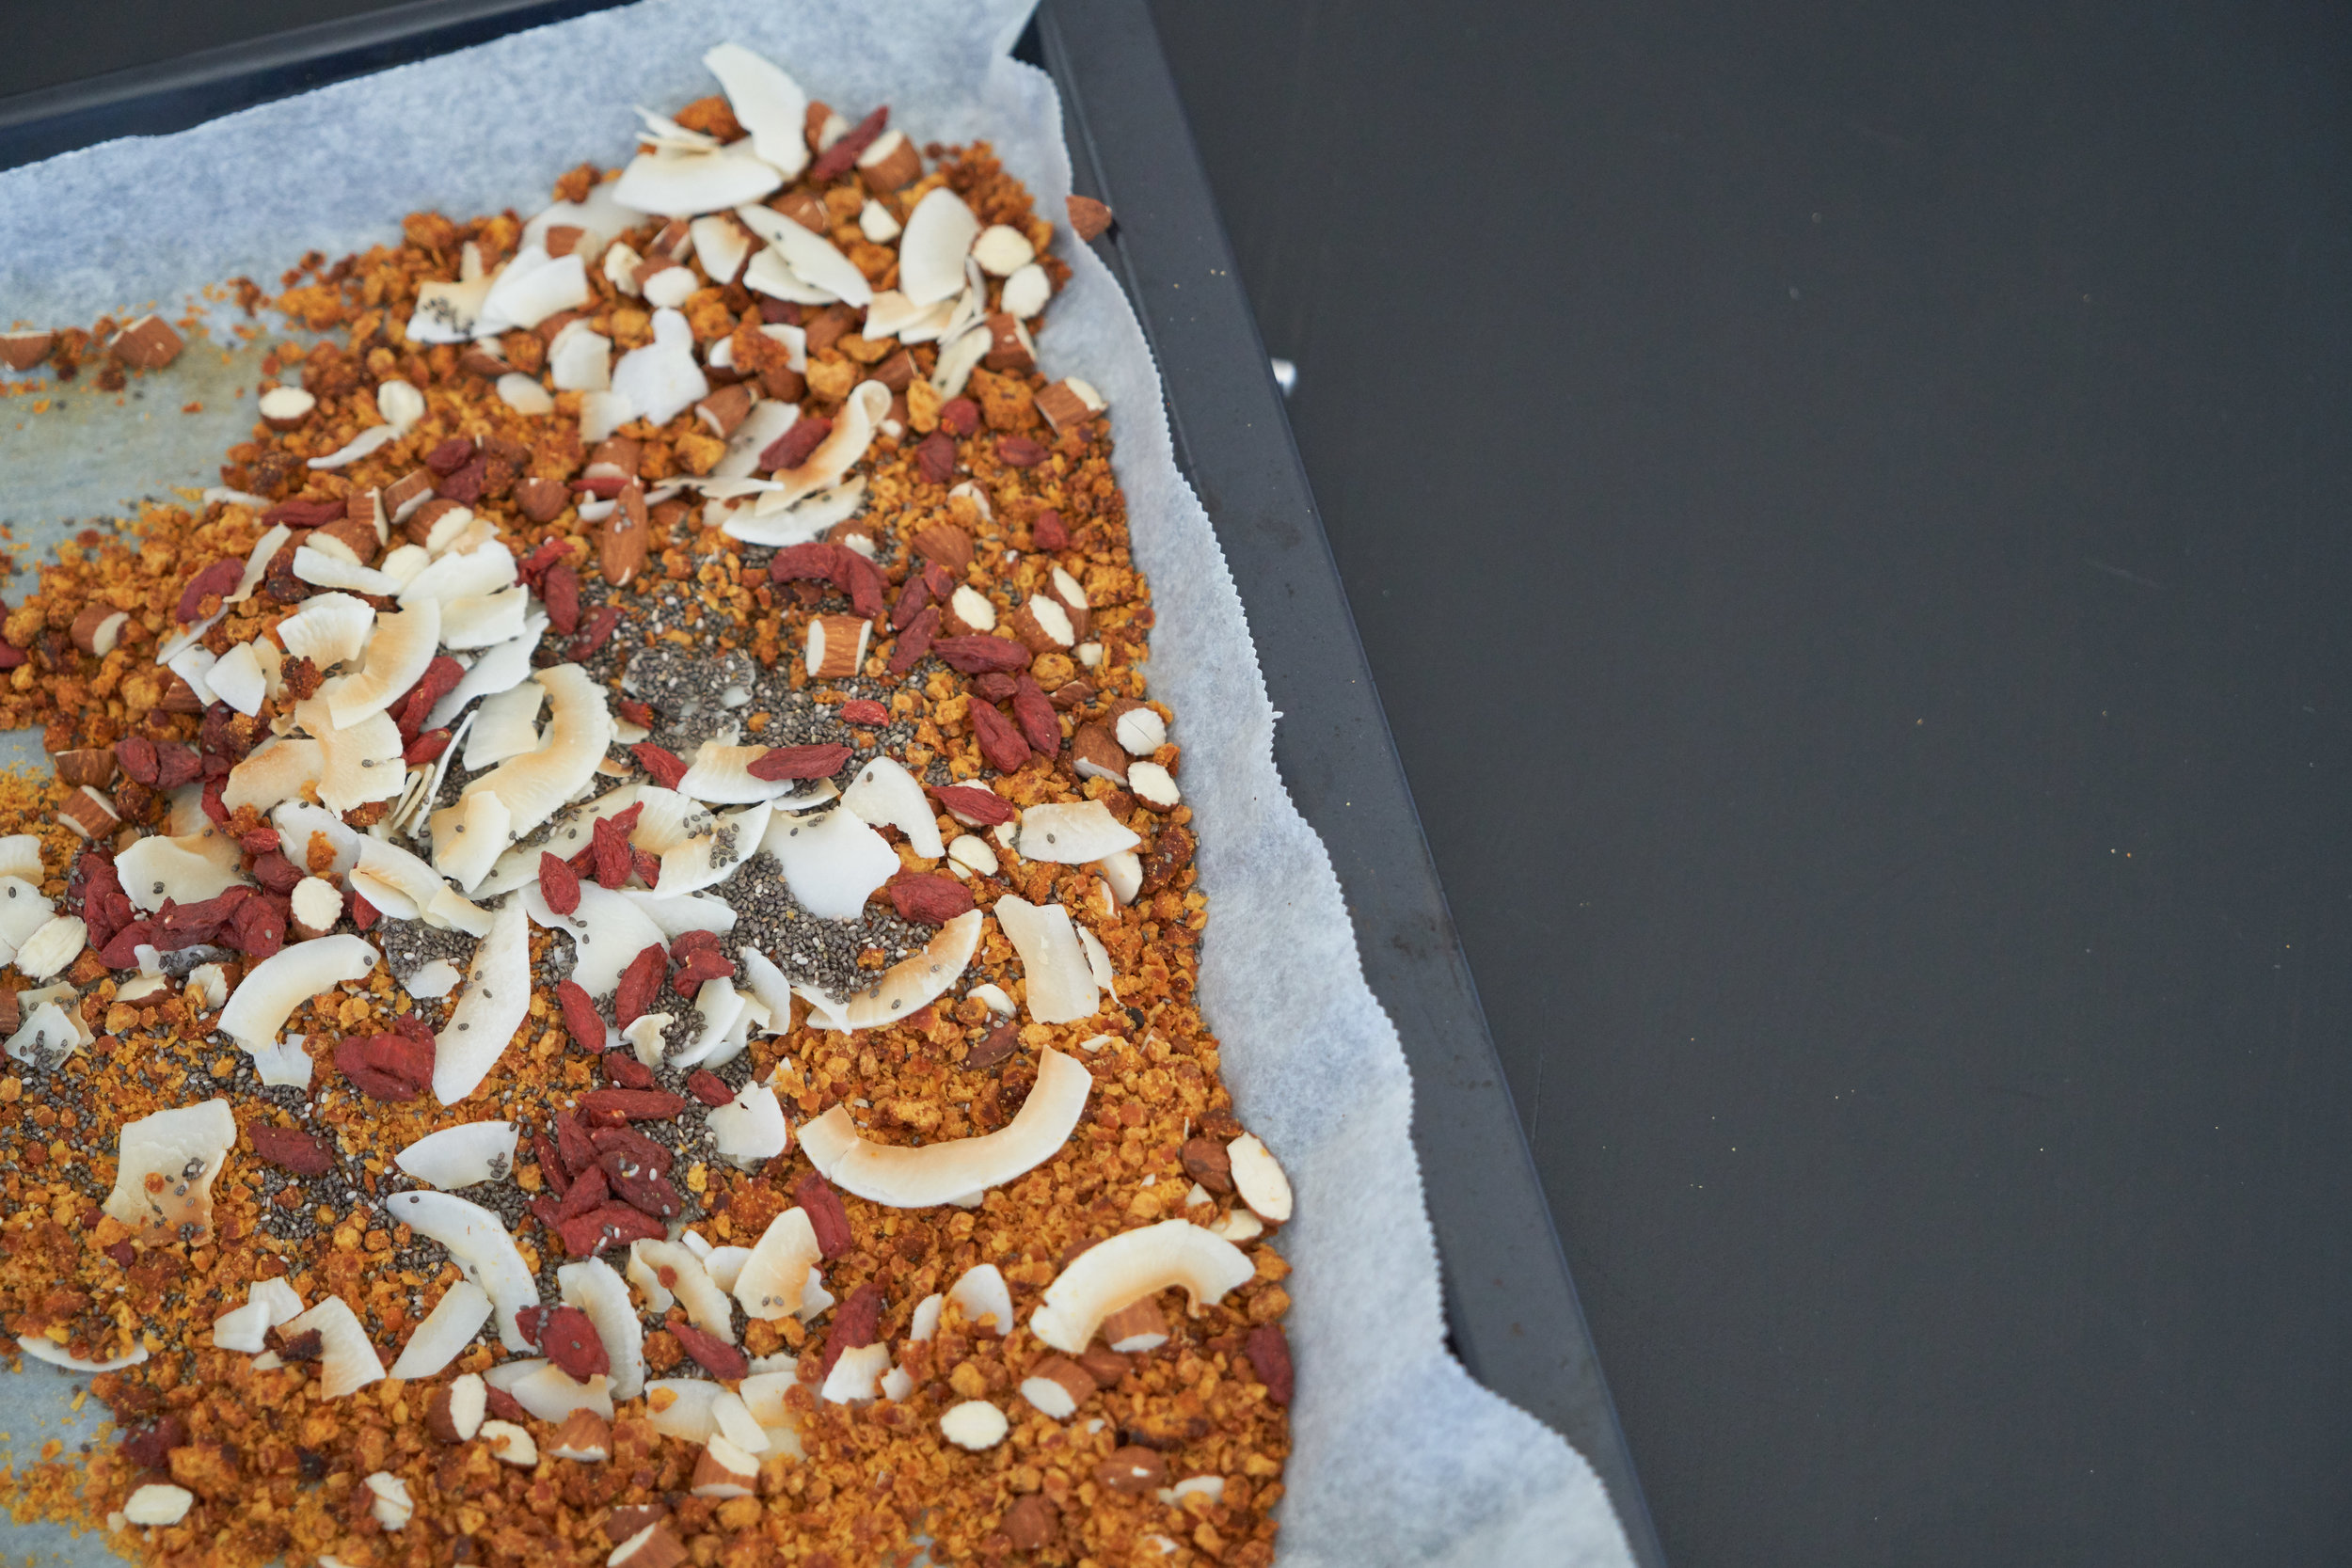 Lentil Granola for a Protein-Rich Breakfast | In Carina's Kitchen